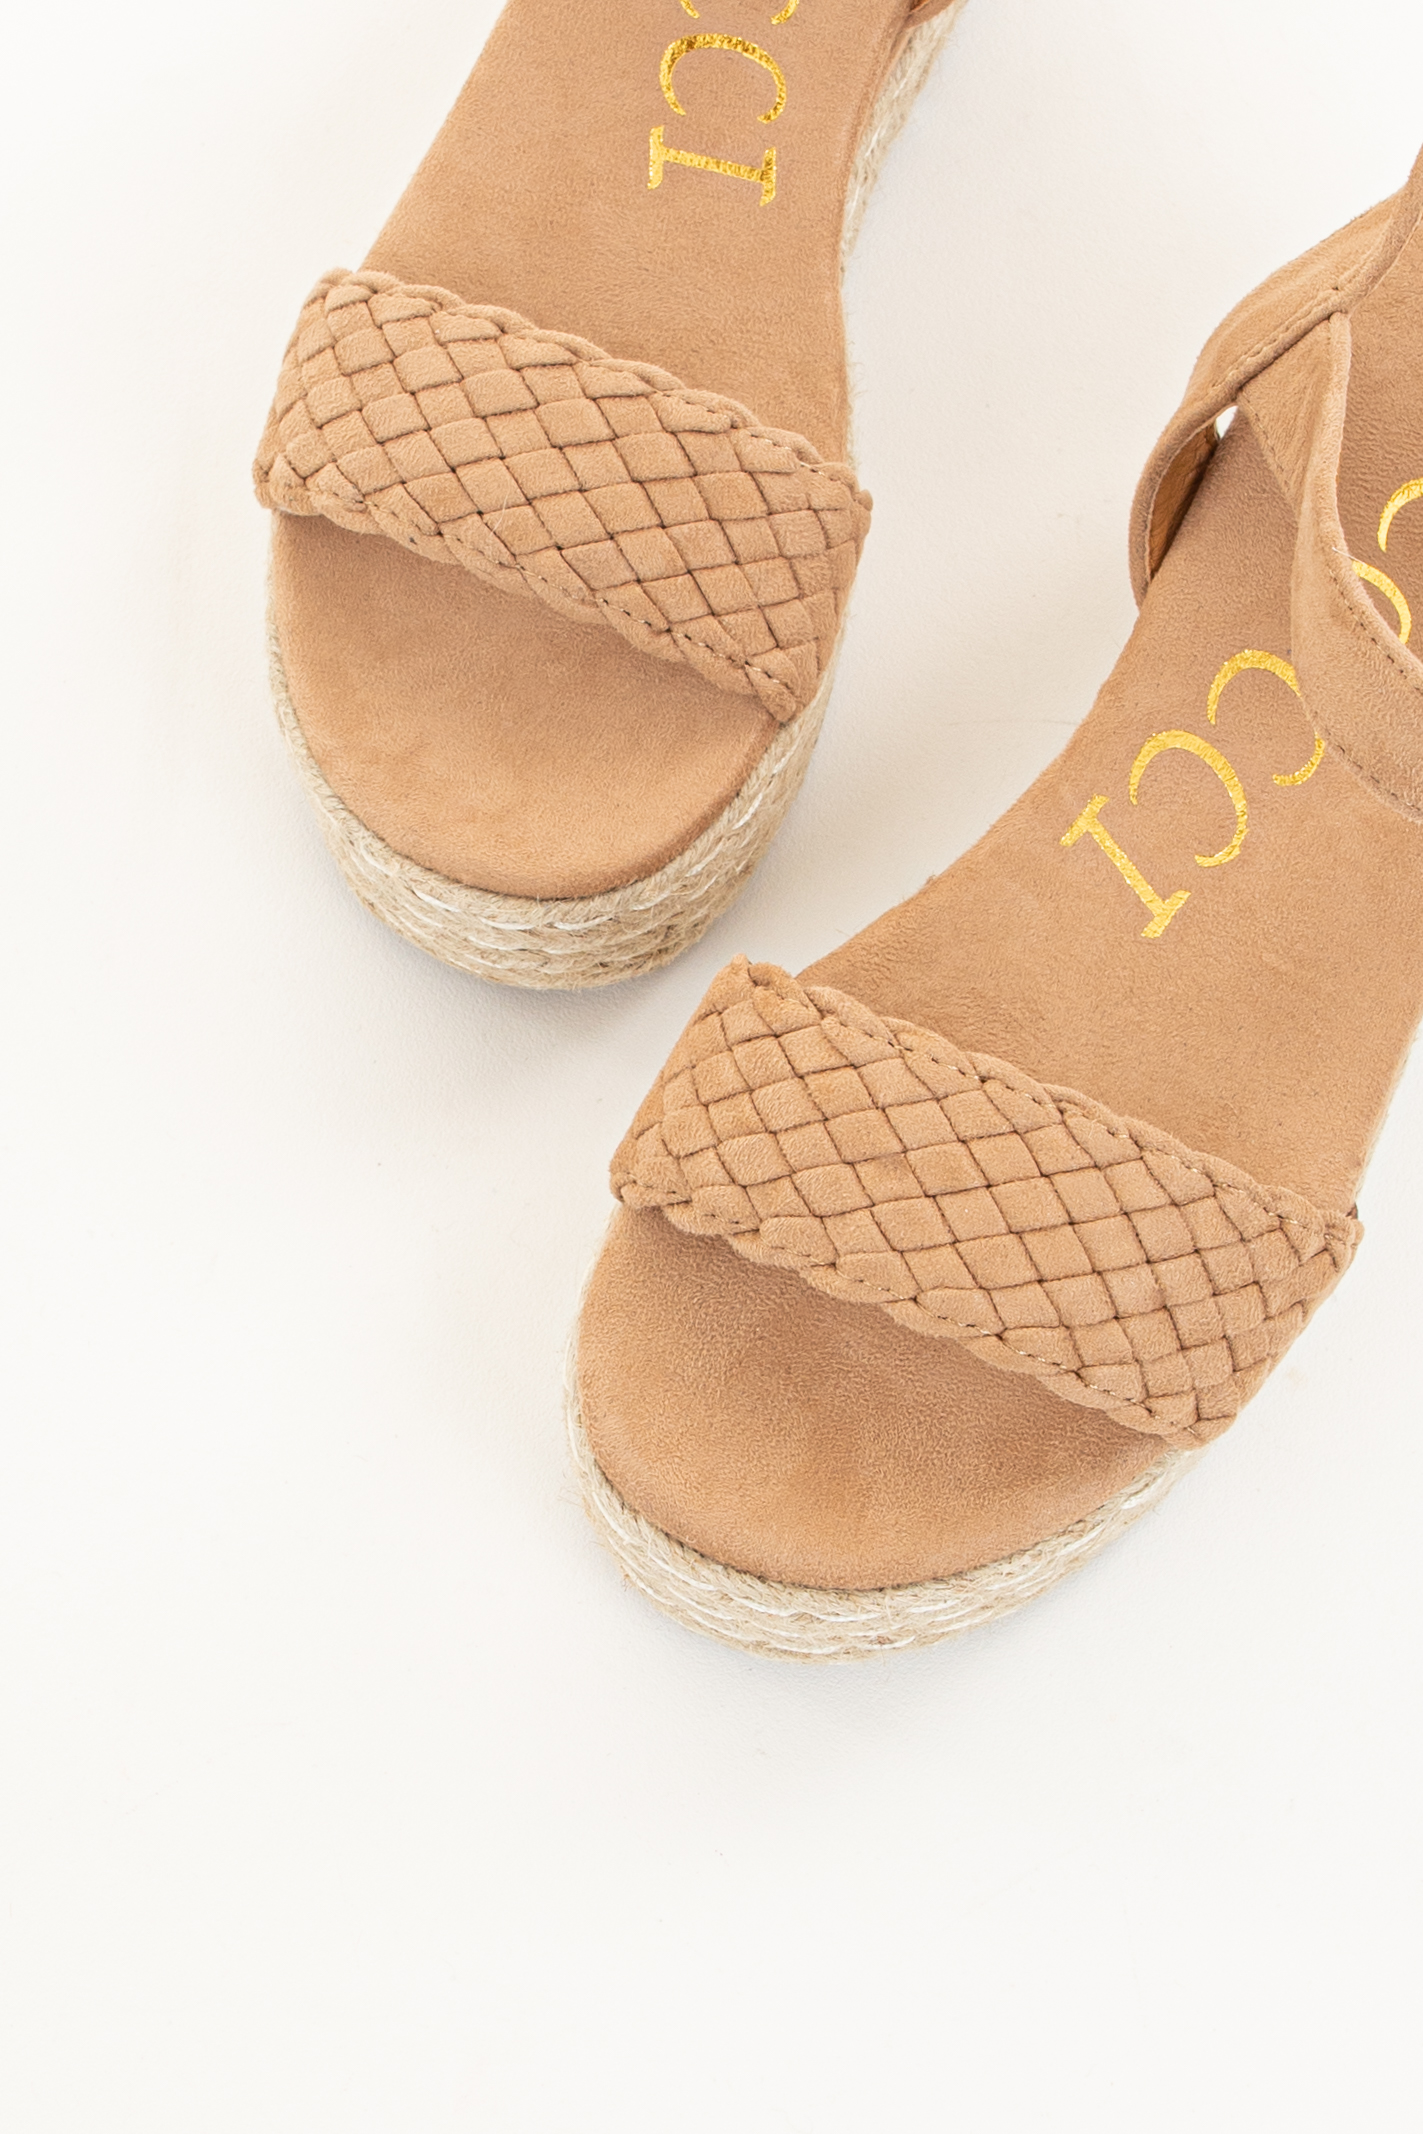 Beige Faux Suede Espadrille Sandal with Weaved Toe Strap